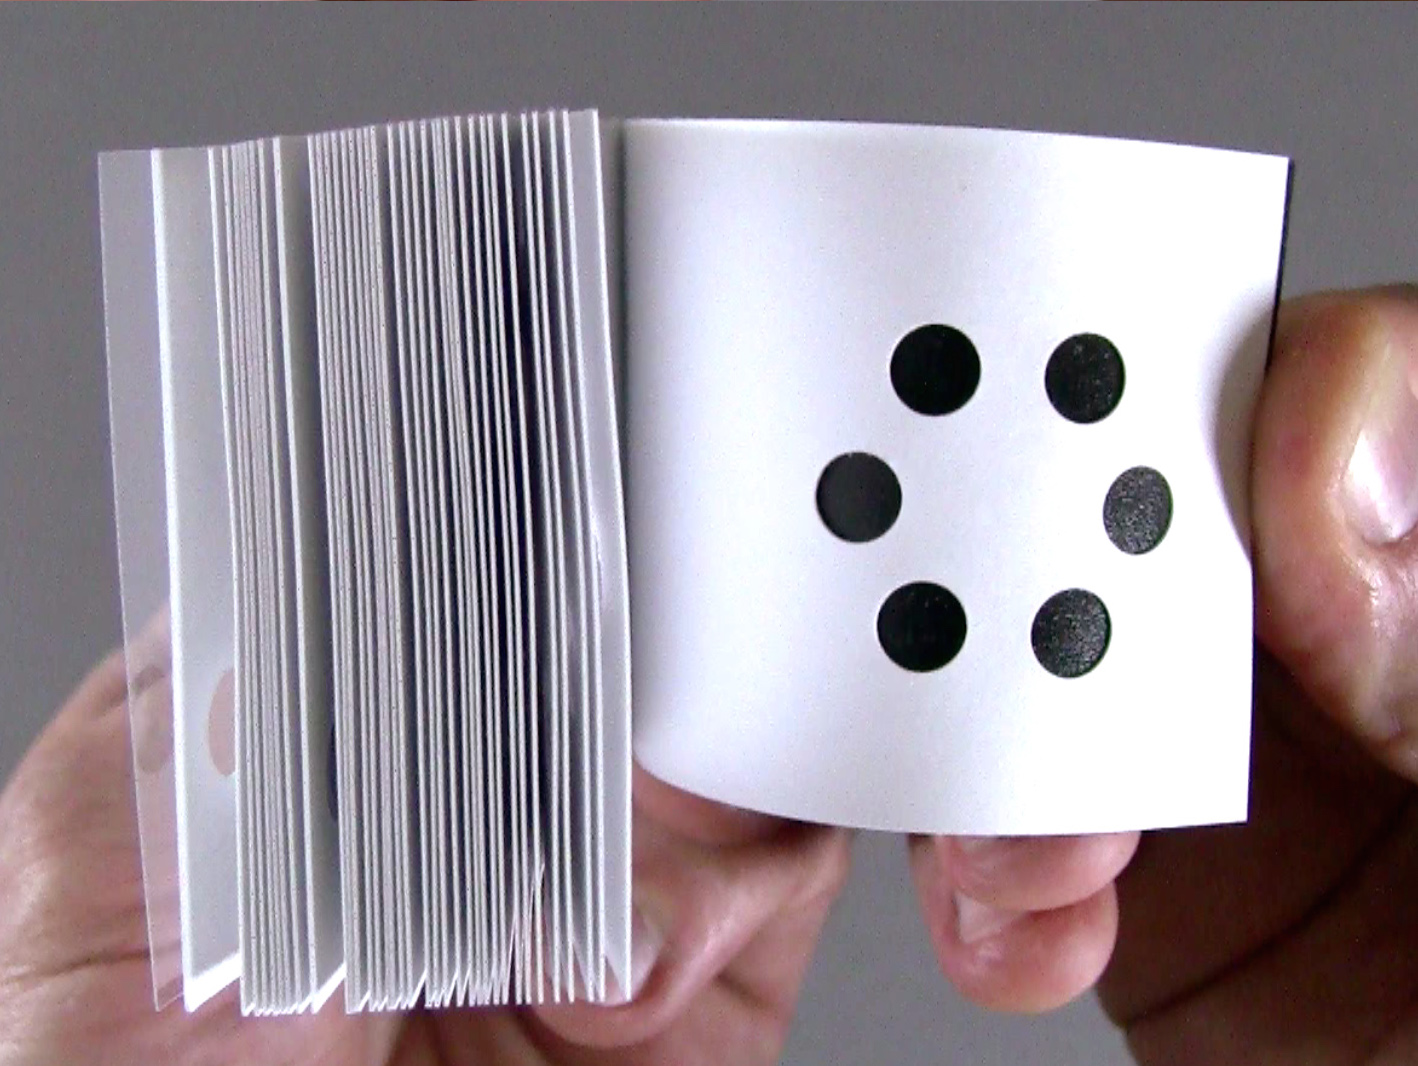 Hole Punch Adds Twist to the Classic Flipbook  Make